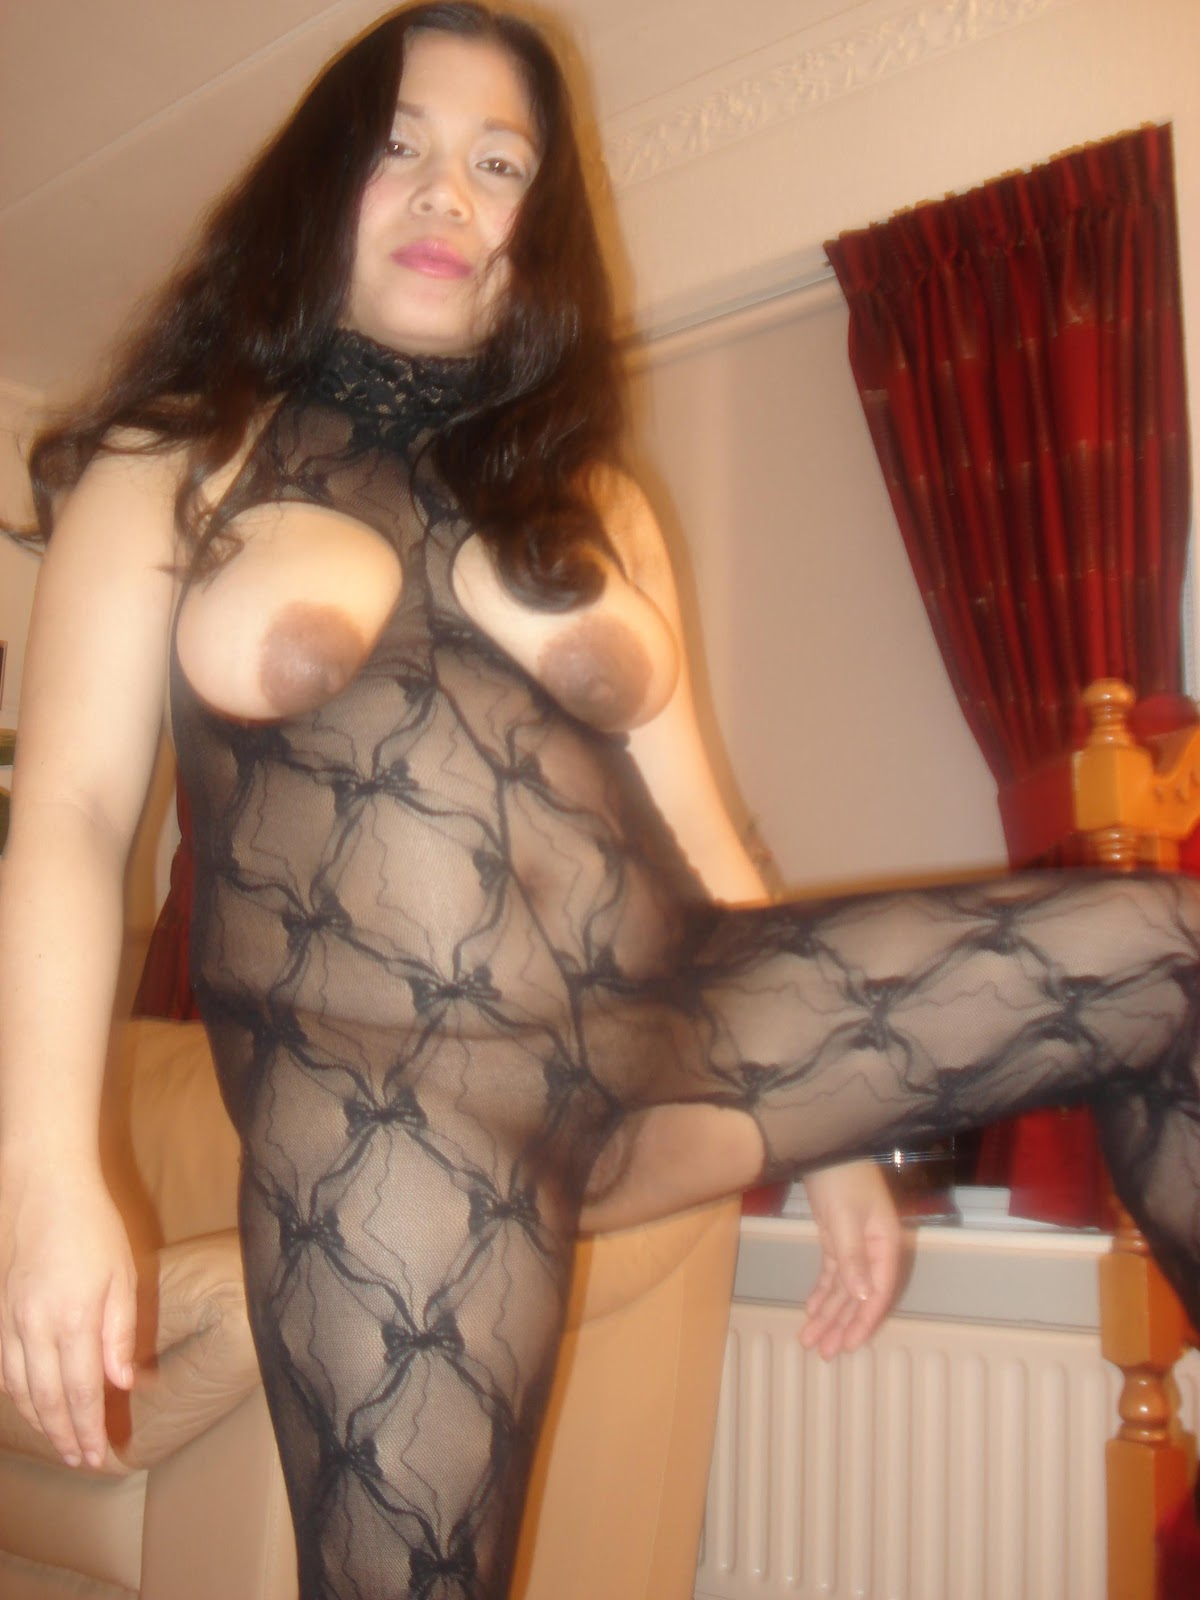 Mature swinging pinay pregnant girl nude home made